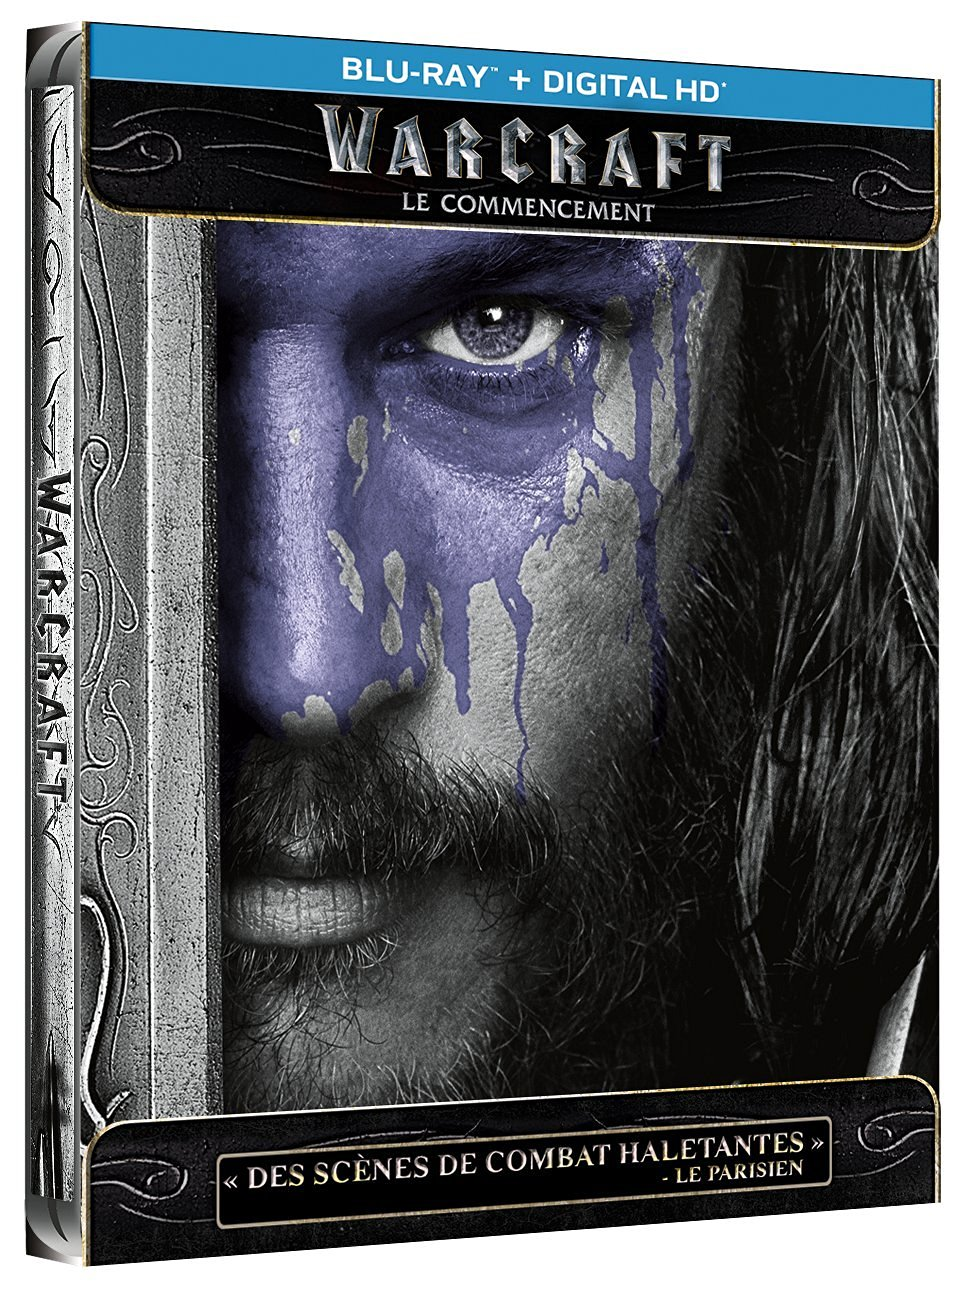 Blu-ray Warcraft : le commencement, Blu-ray pas cher Amazon